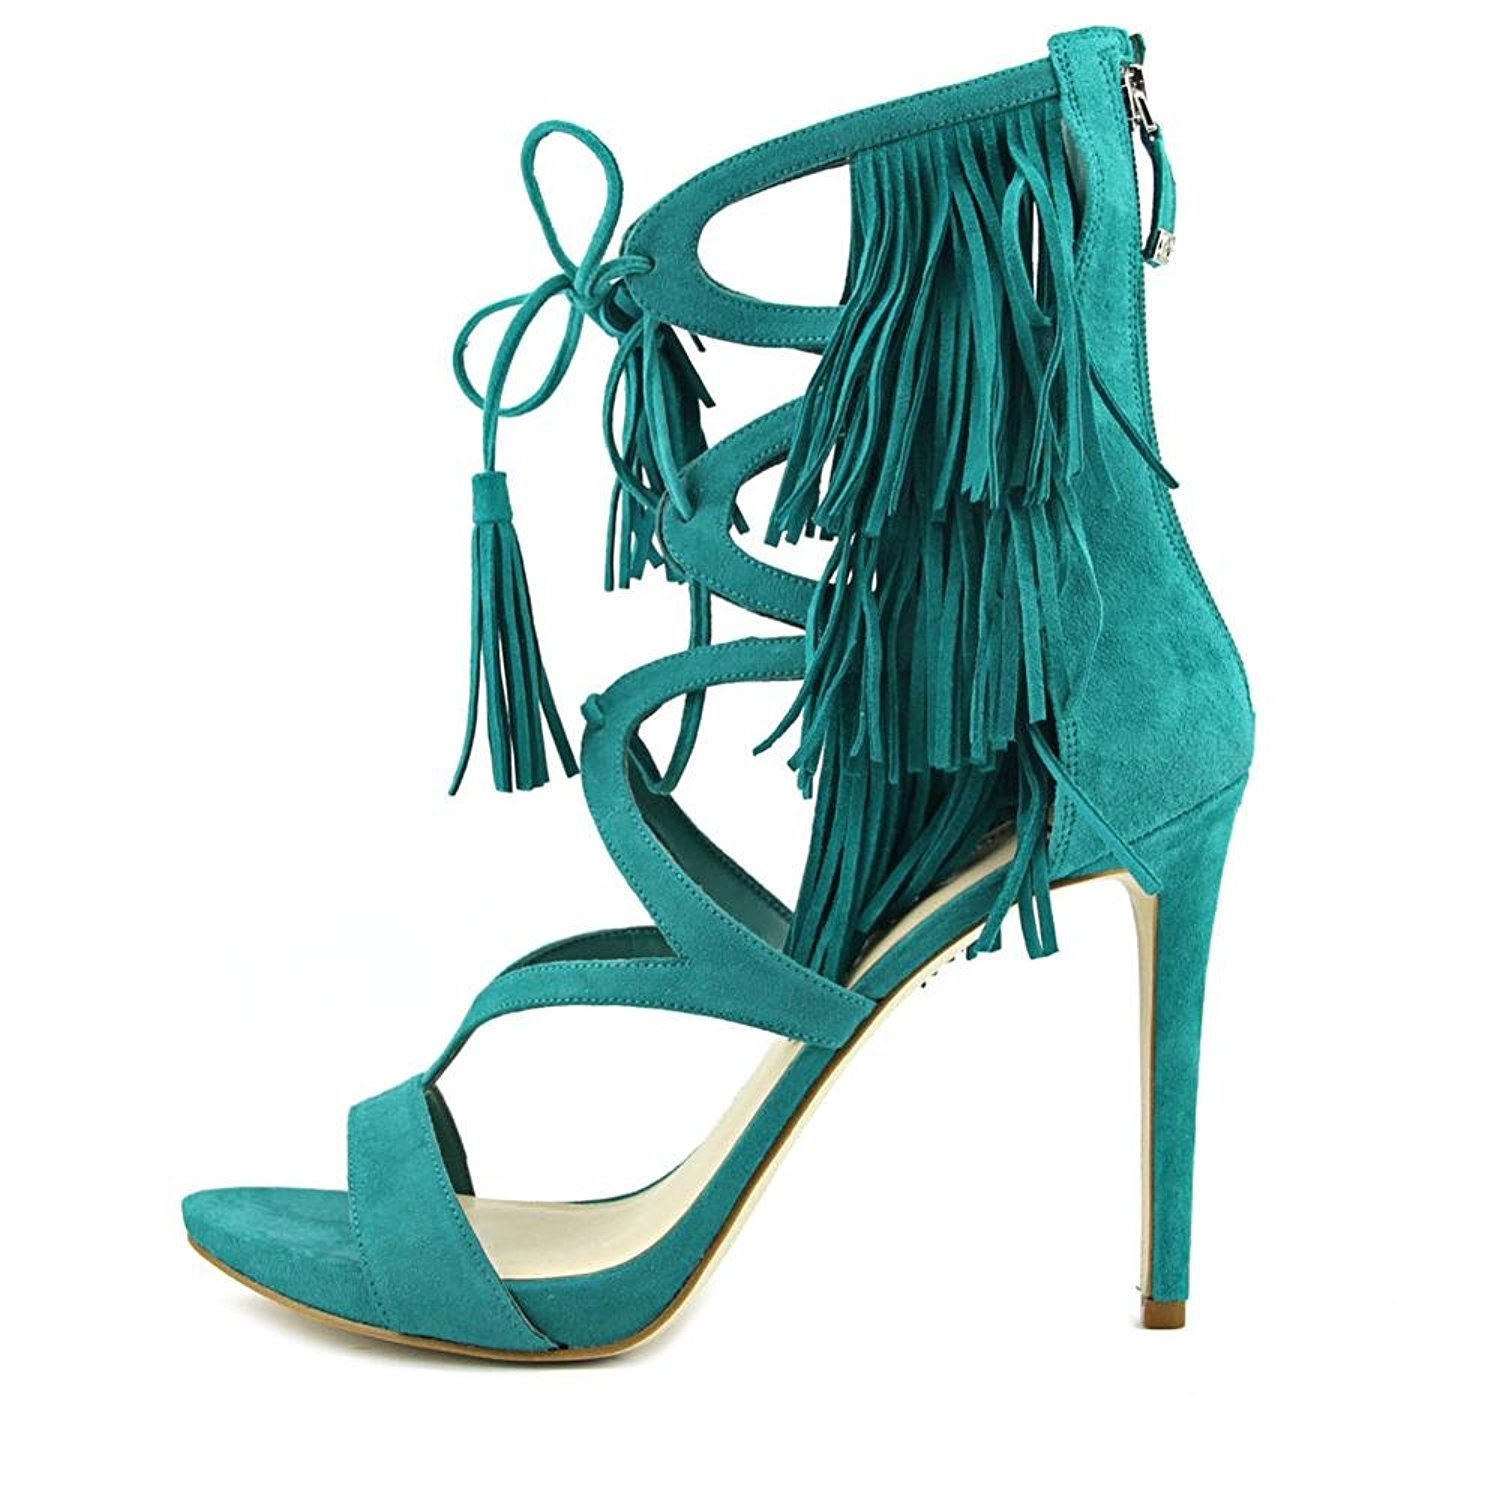 GUESS Womens Abria Open Toe Casual Ankle Strap Sandals Green Suede Size 5.5